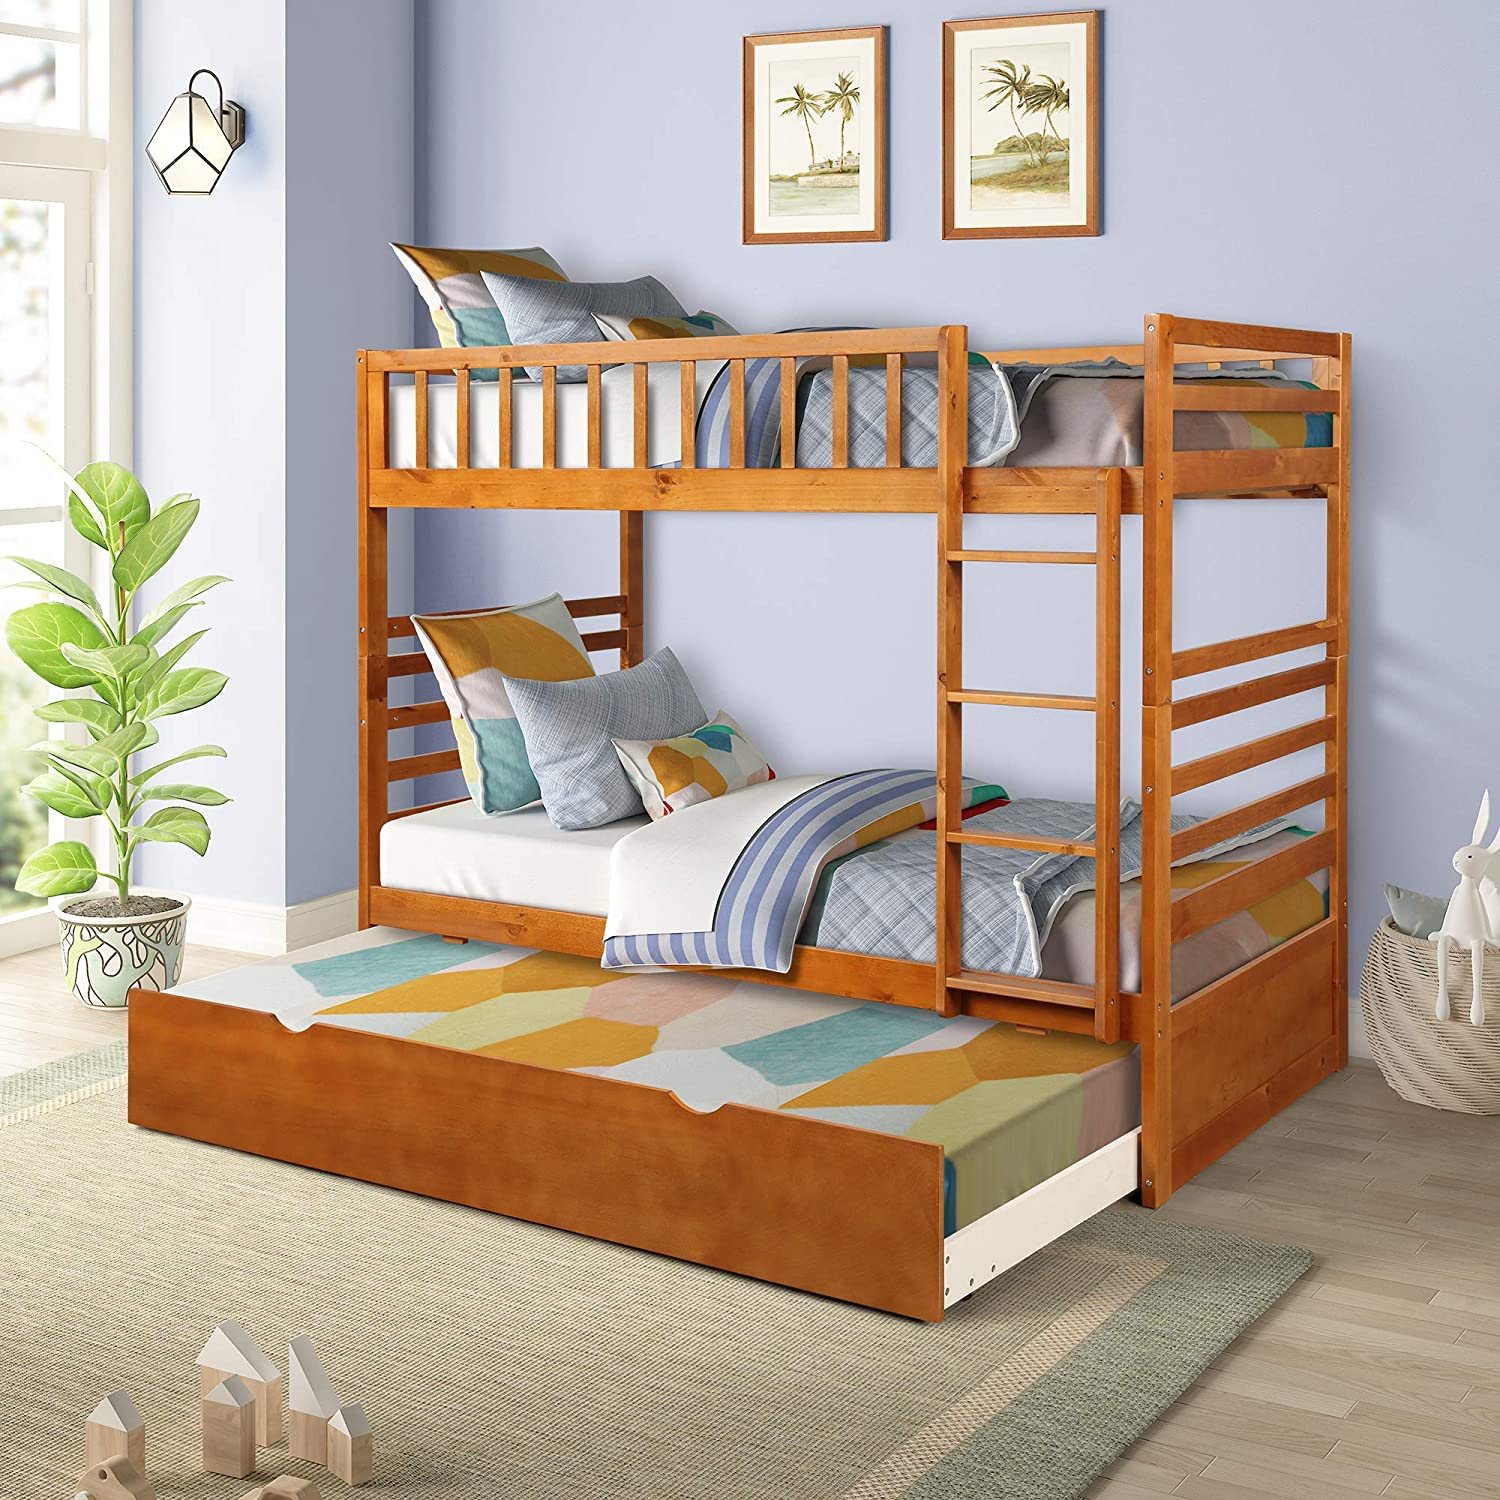 Merax Twin-Over-Twin Bunk Bed for Kids, Solid Wood bunk beds with Trundle Beds Ladders and Safety Rail Oak